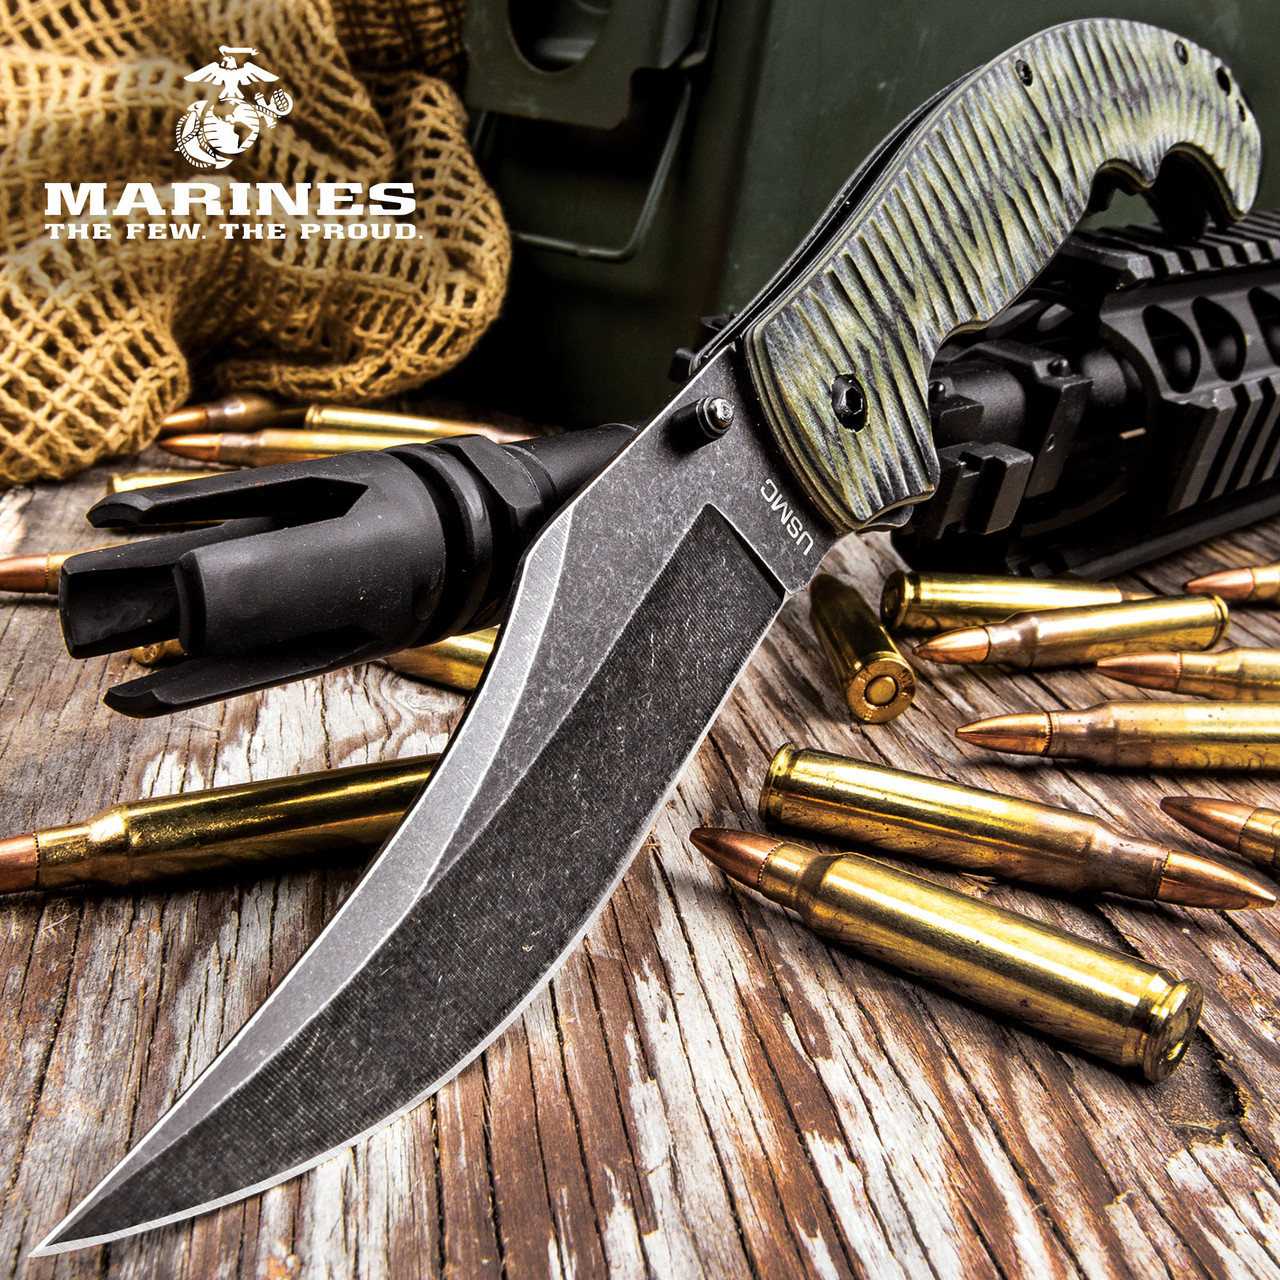 USMC Fallout Assisted Opening Tactical Pocket Knife